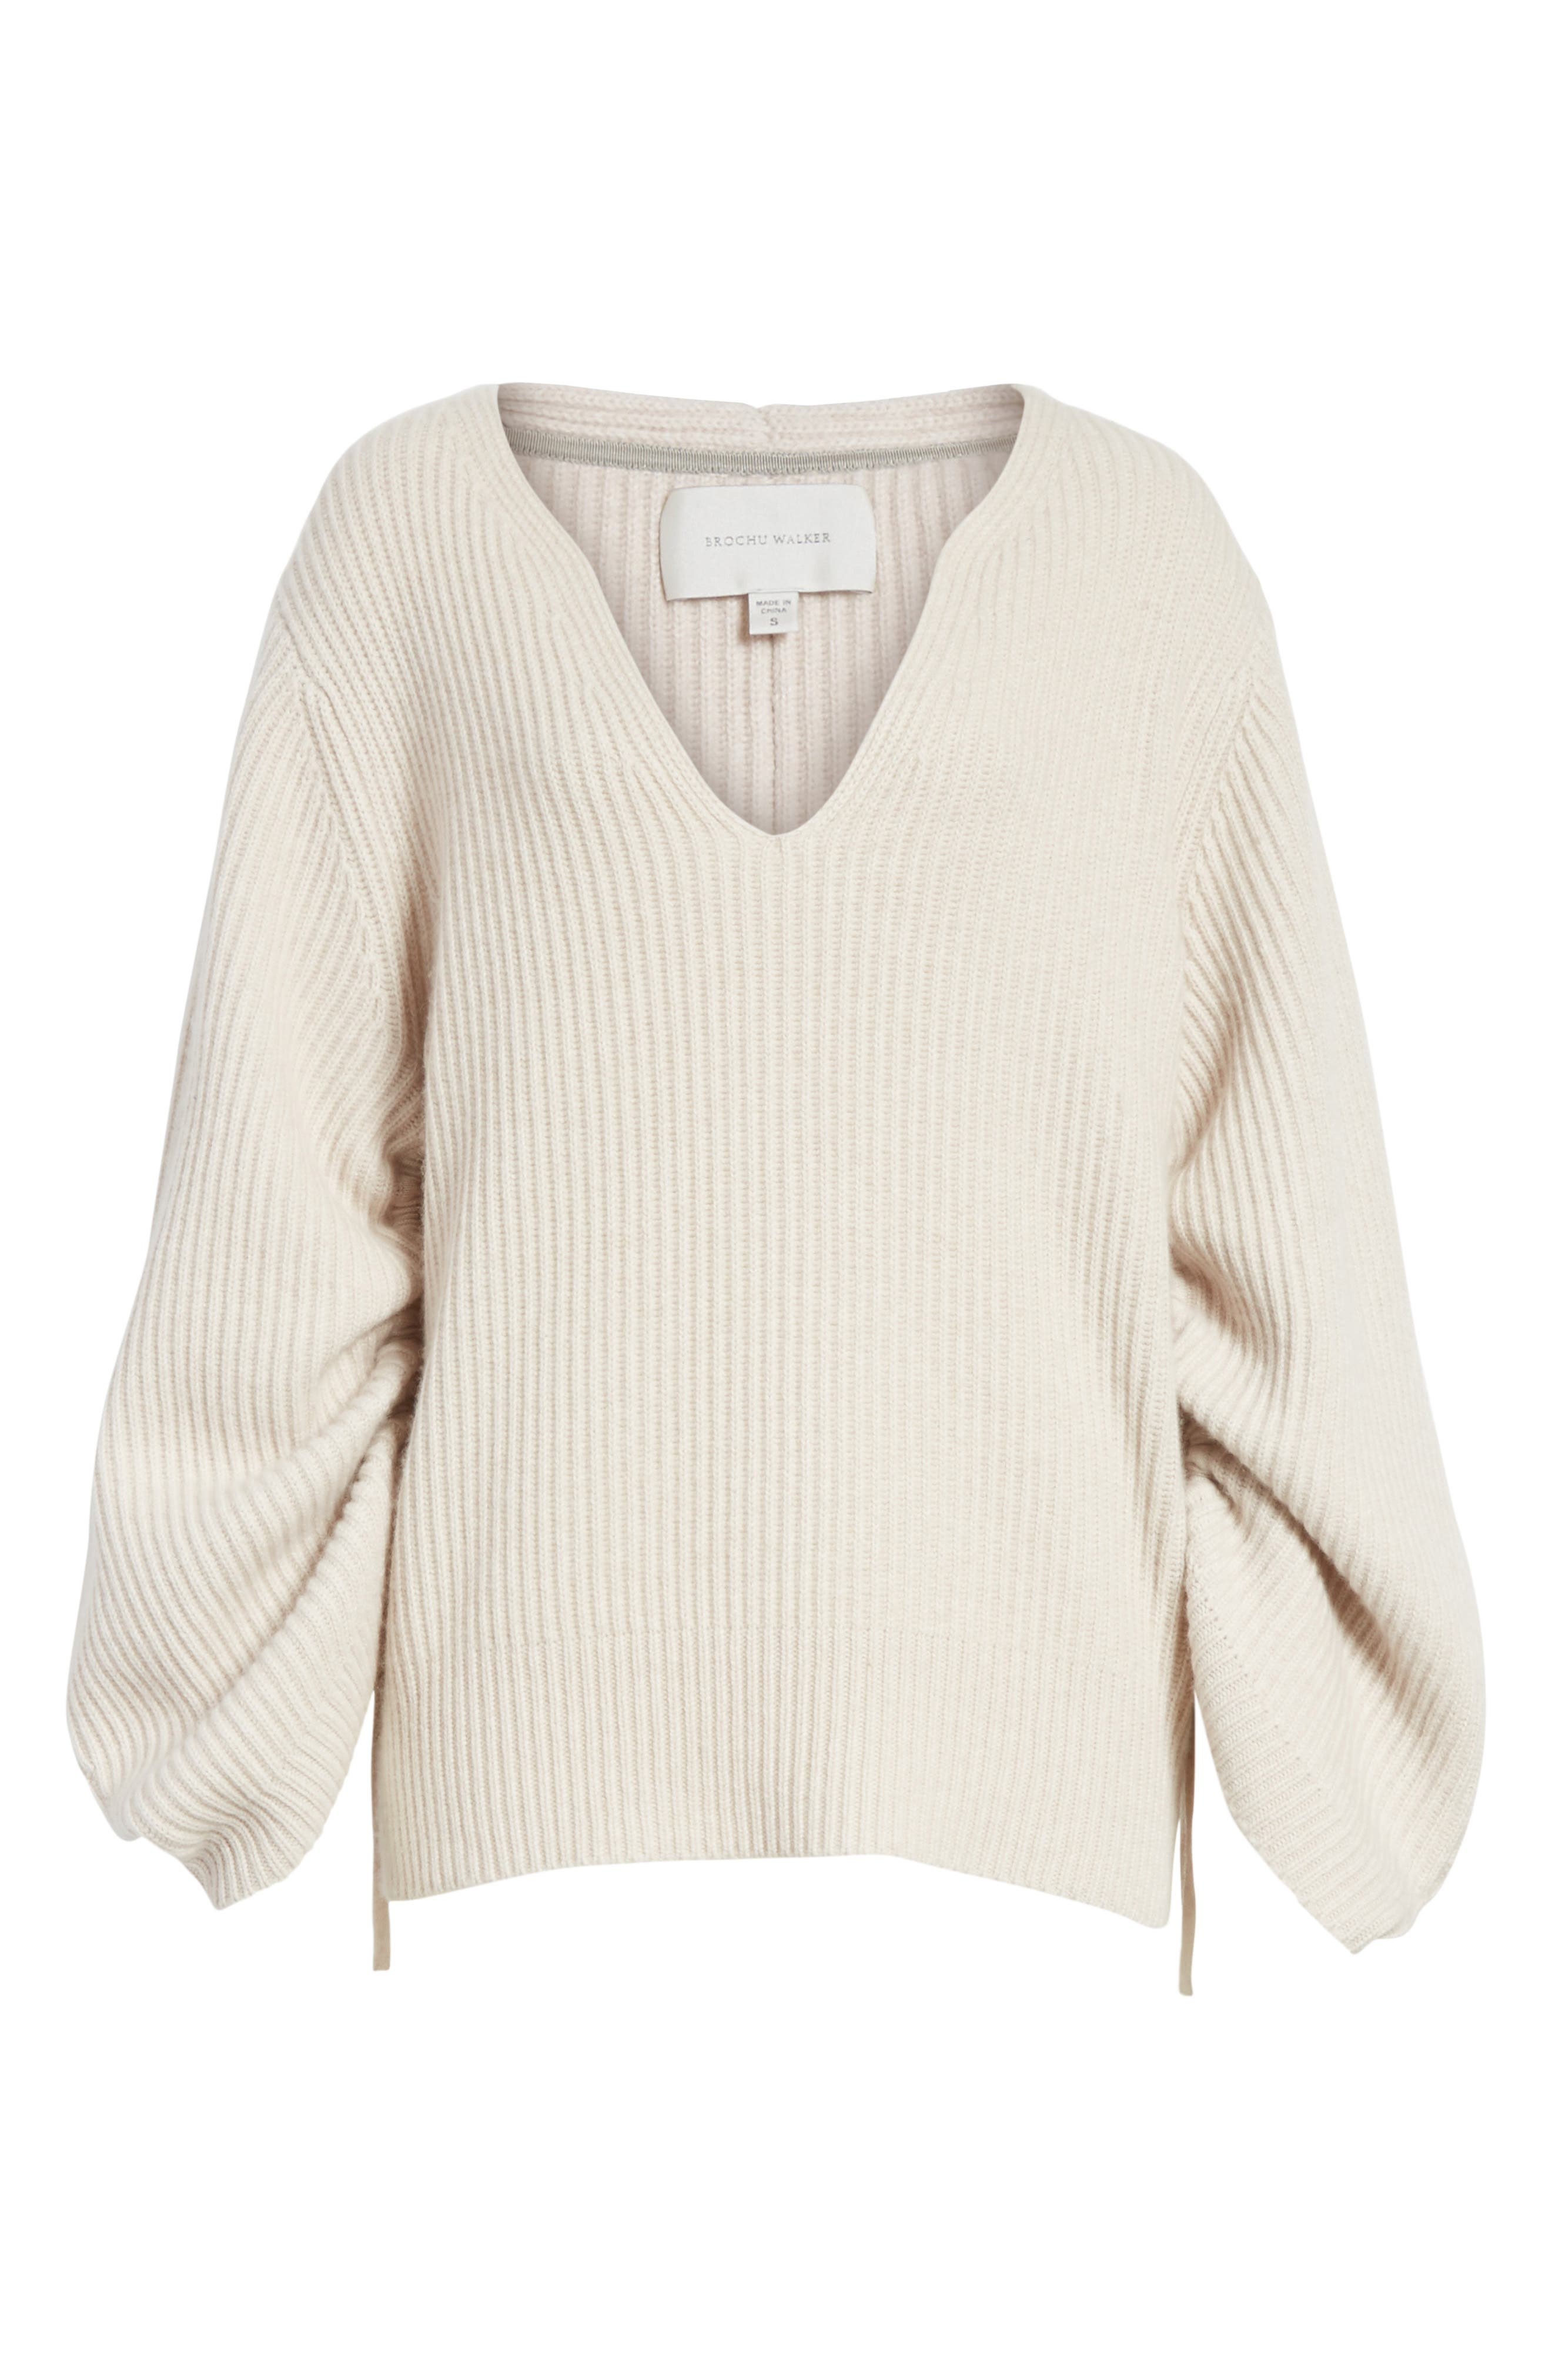 Anneka Wool & Cashmere Puff Sleeve Sweater,                             Alternate thumbnail 6, color,                             270